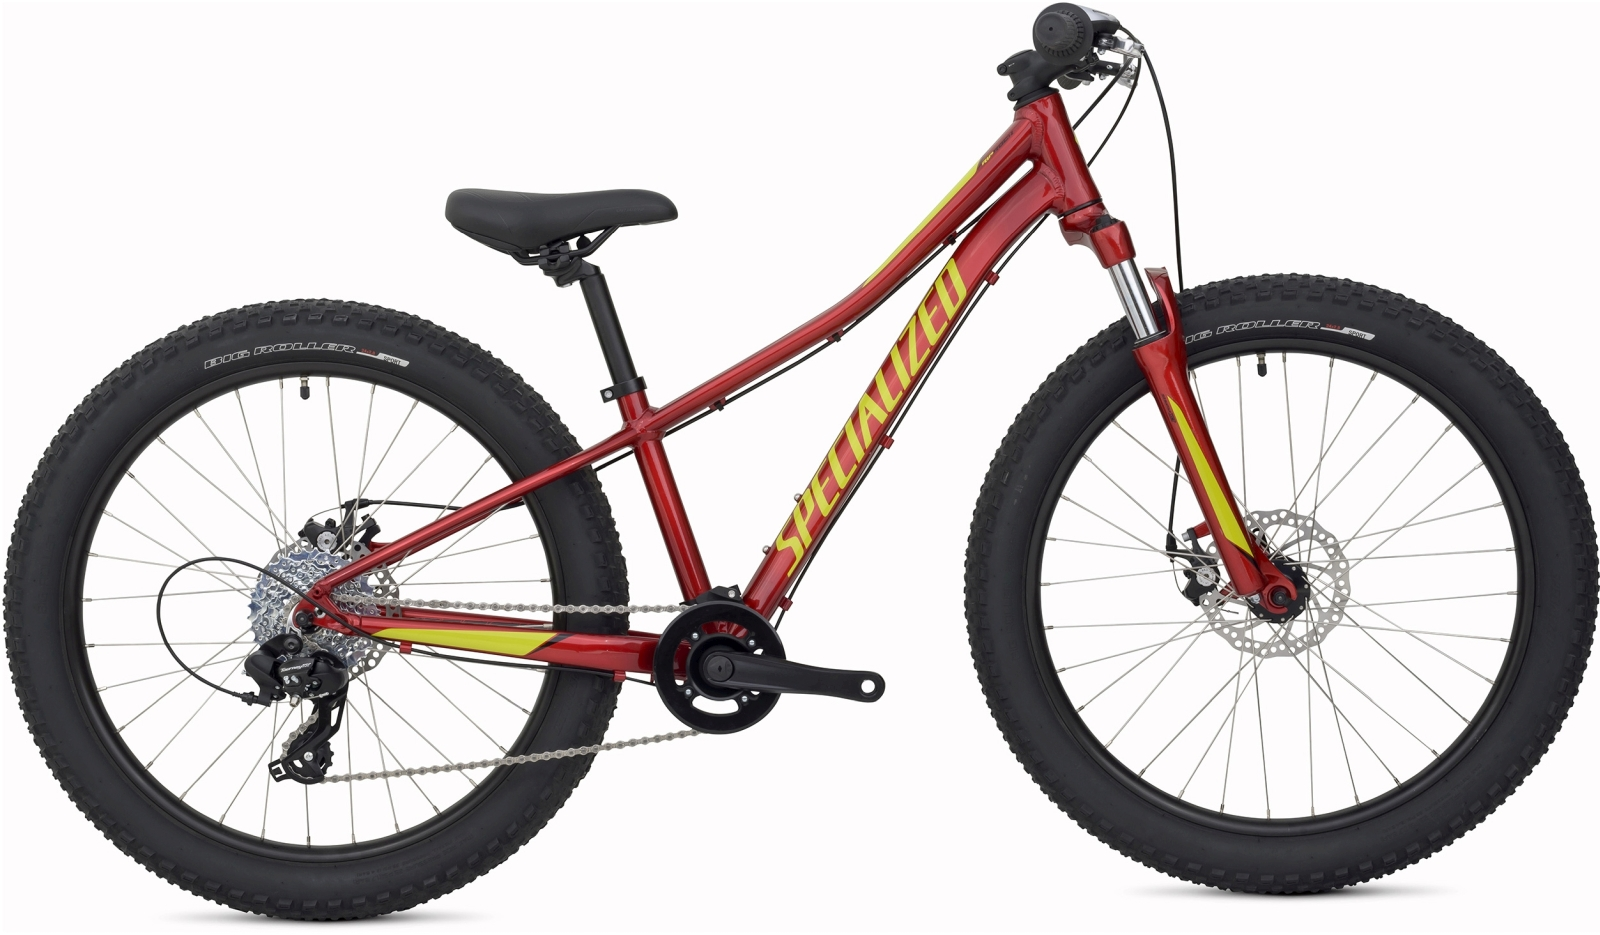 Specialized Riprock 24 - candy red/hyper green/black uni